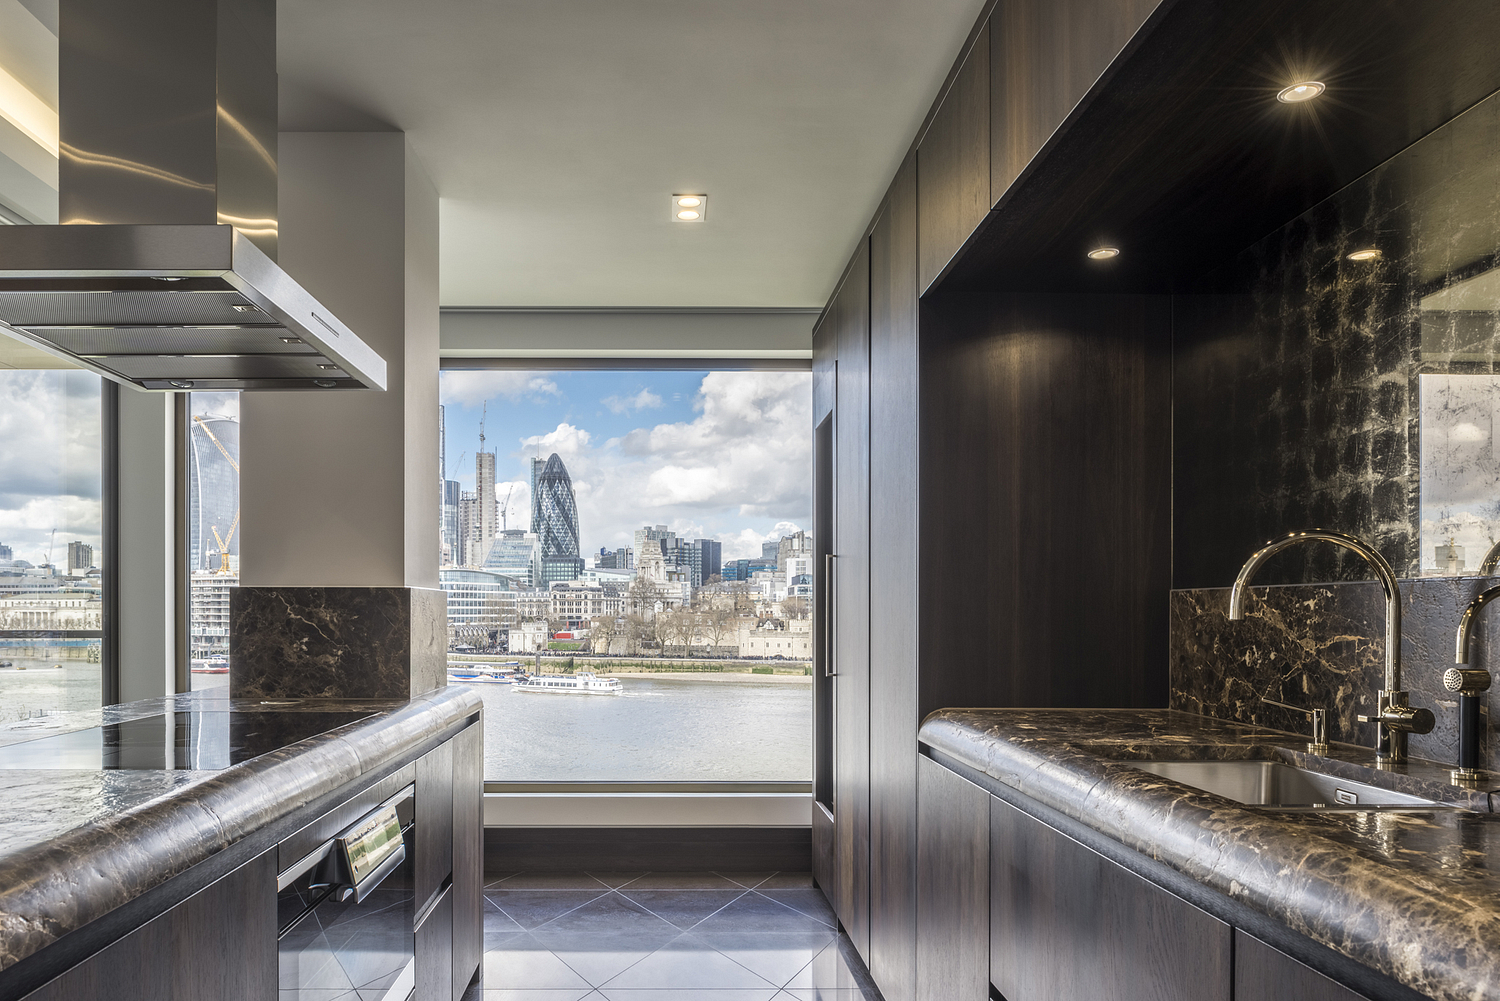 Kitchen detail with view of London skyline